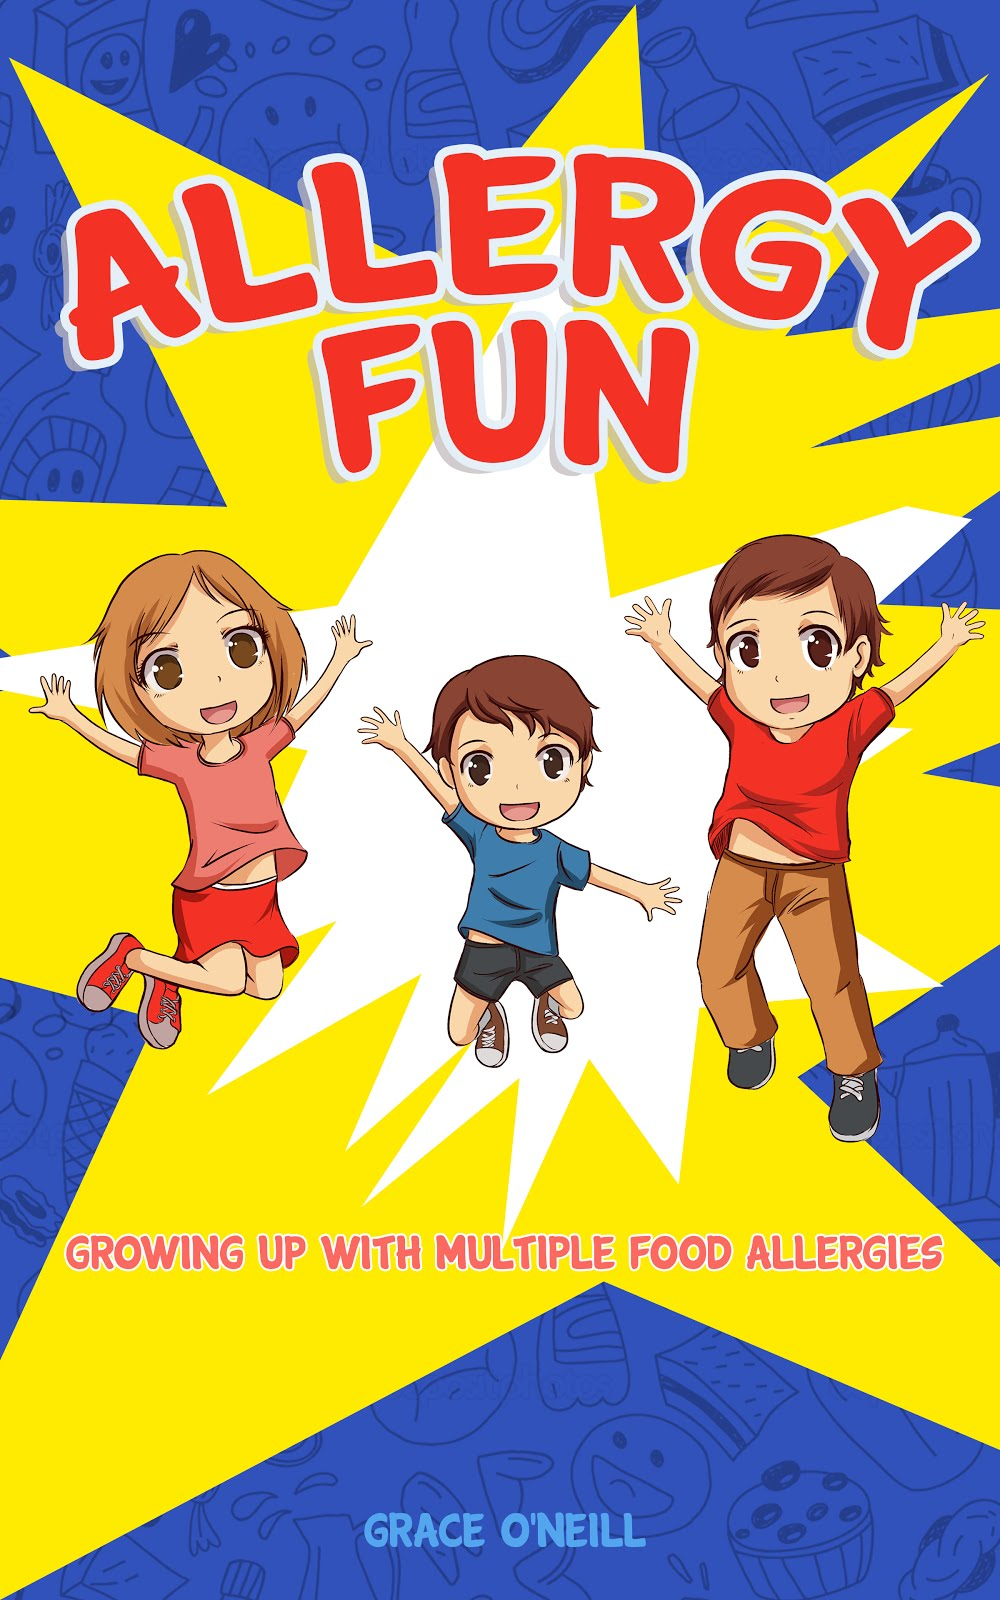 Allergy Fun Photobook, includes My Allergy Fun